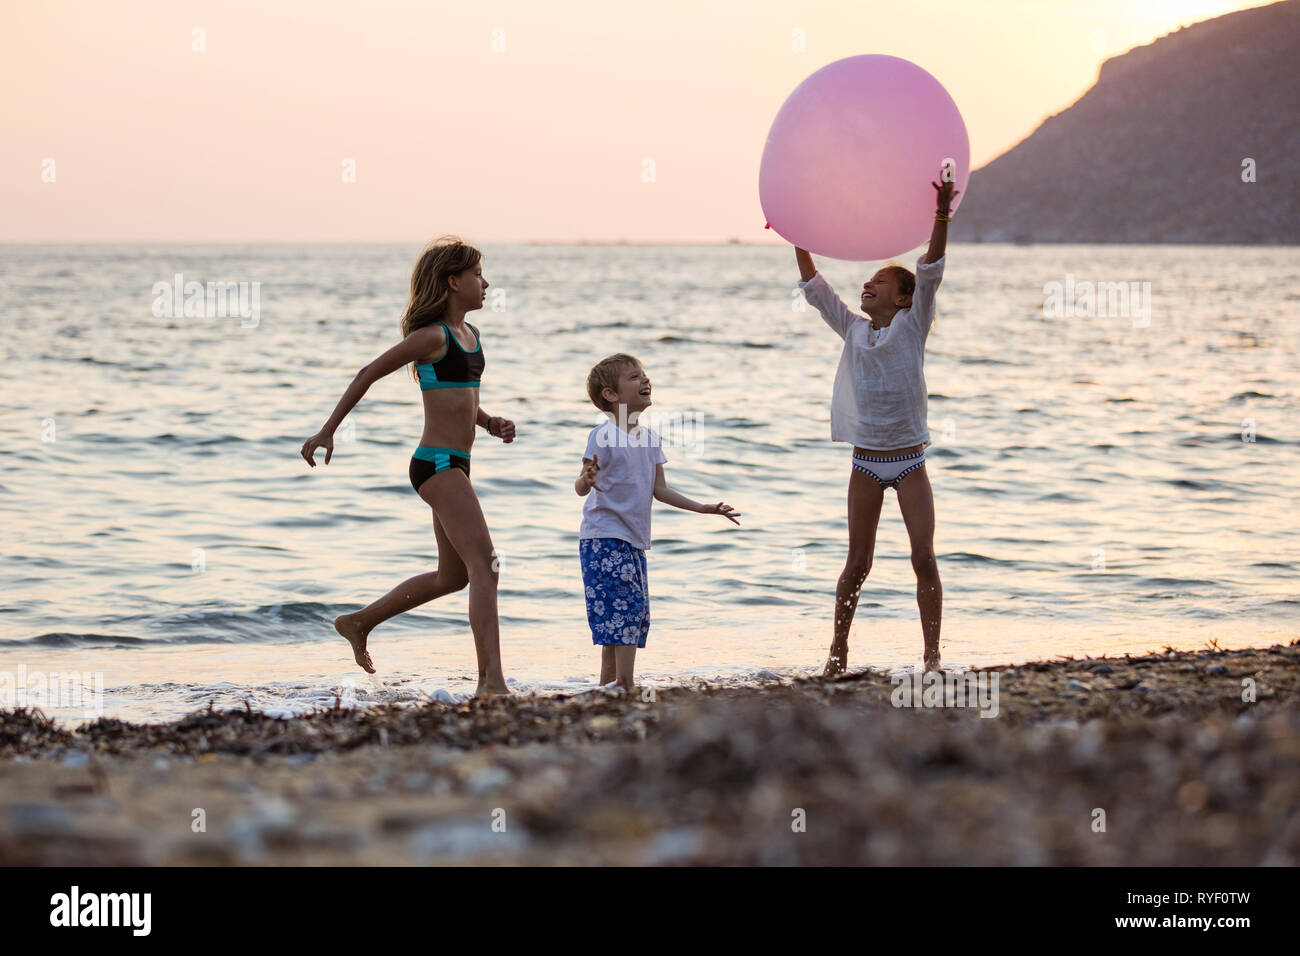 Three children playing with huge pink balloon on beach at sunset. Siblings on vacations at sea. Stock Photo